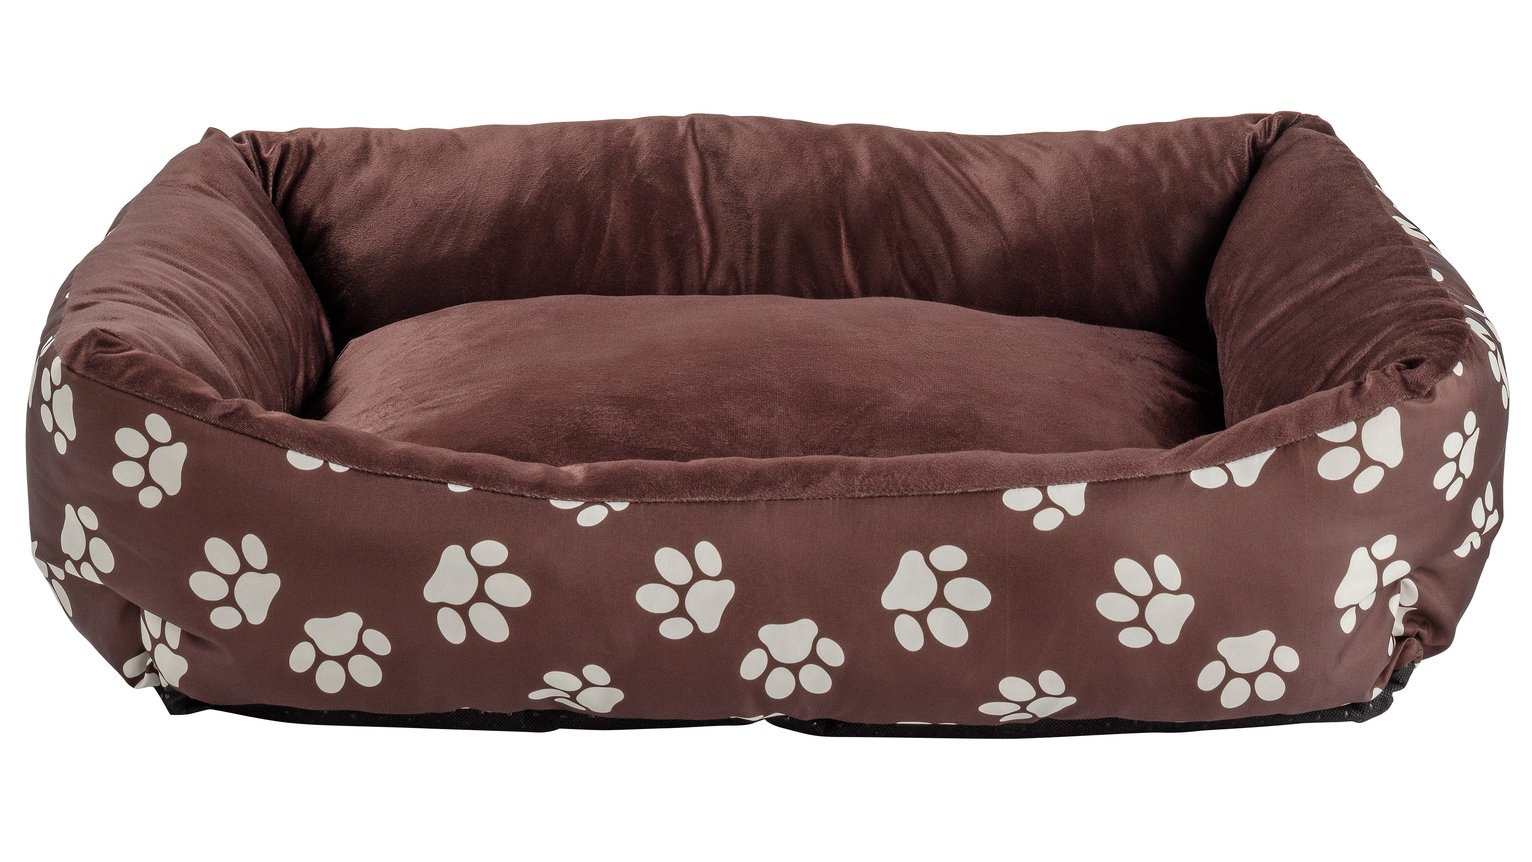 Paw Print Square Pet Bed - Medium